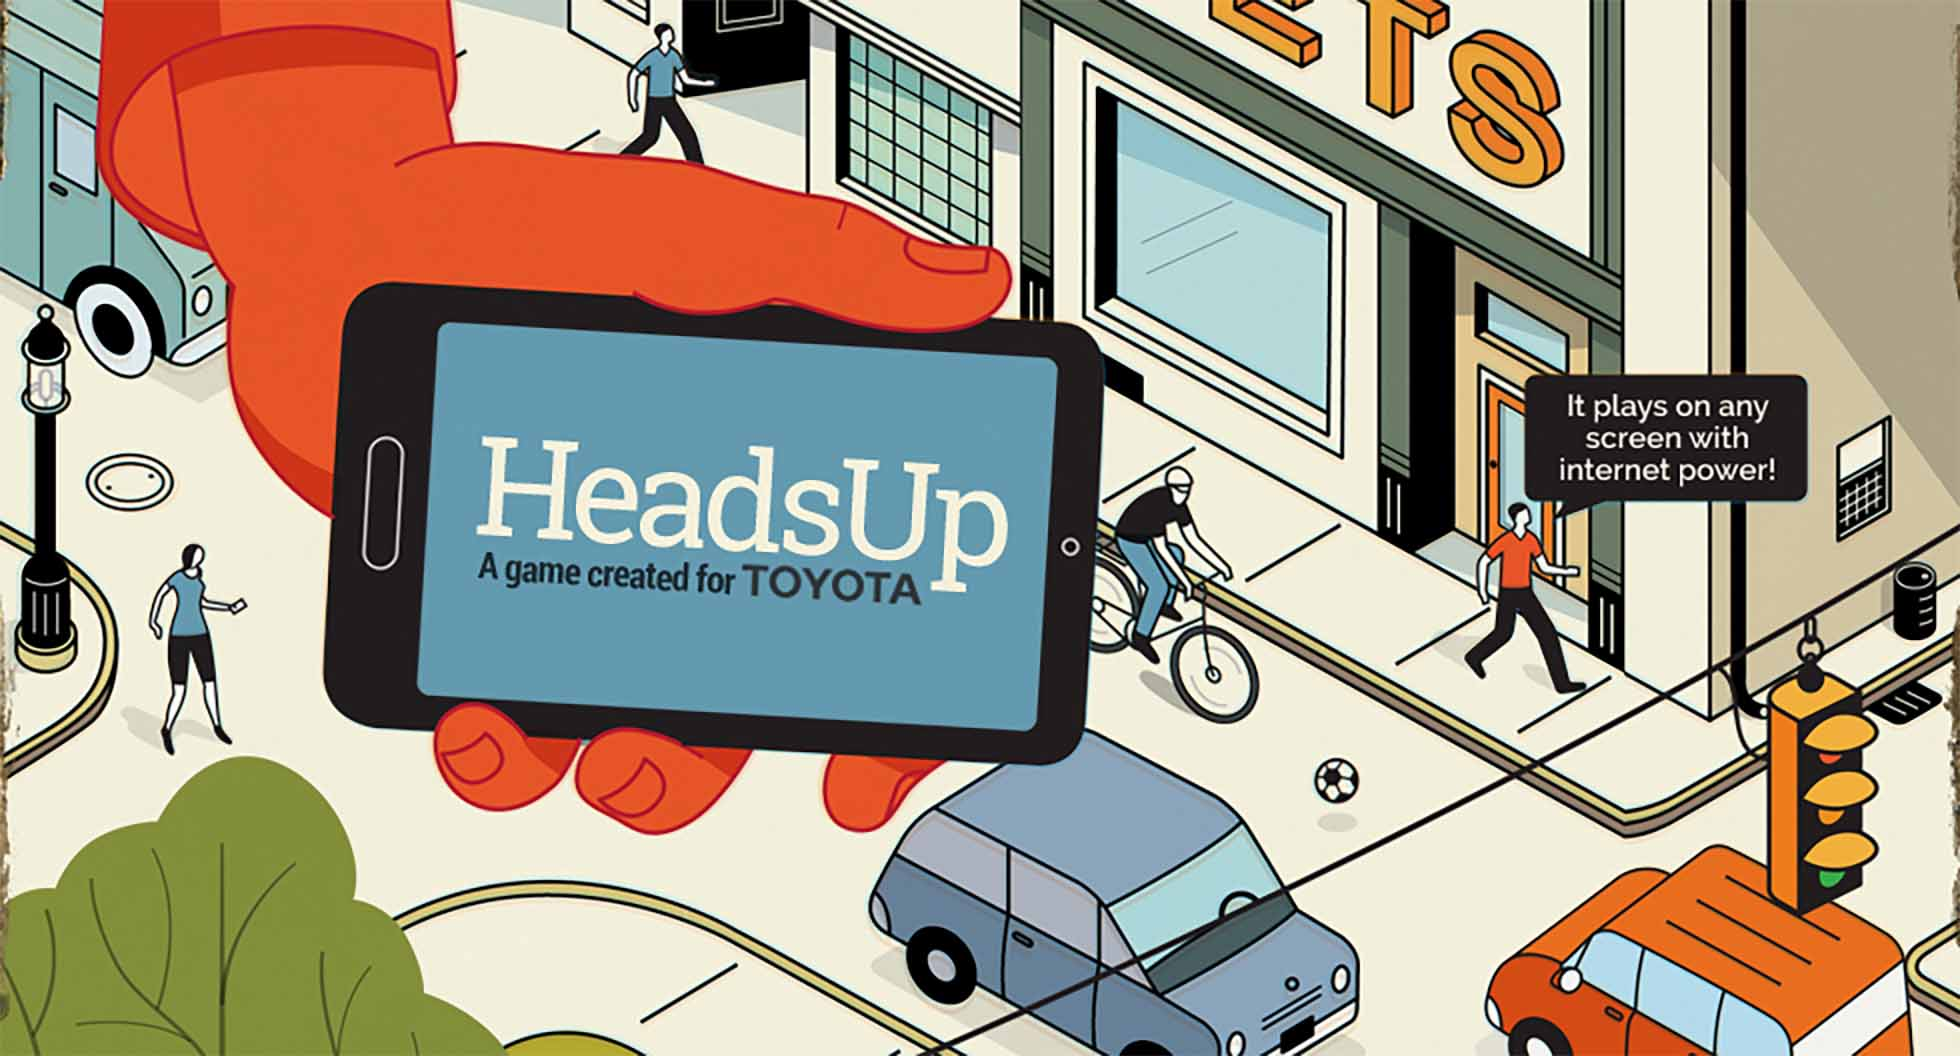 HeadsUp is a game created for Toyota to promote undistracted teen driving.